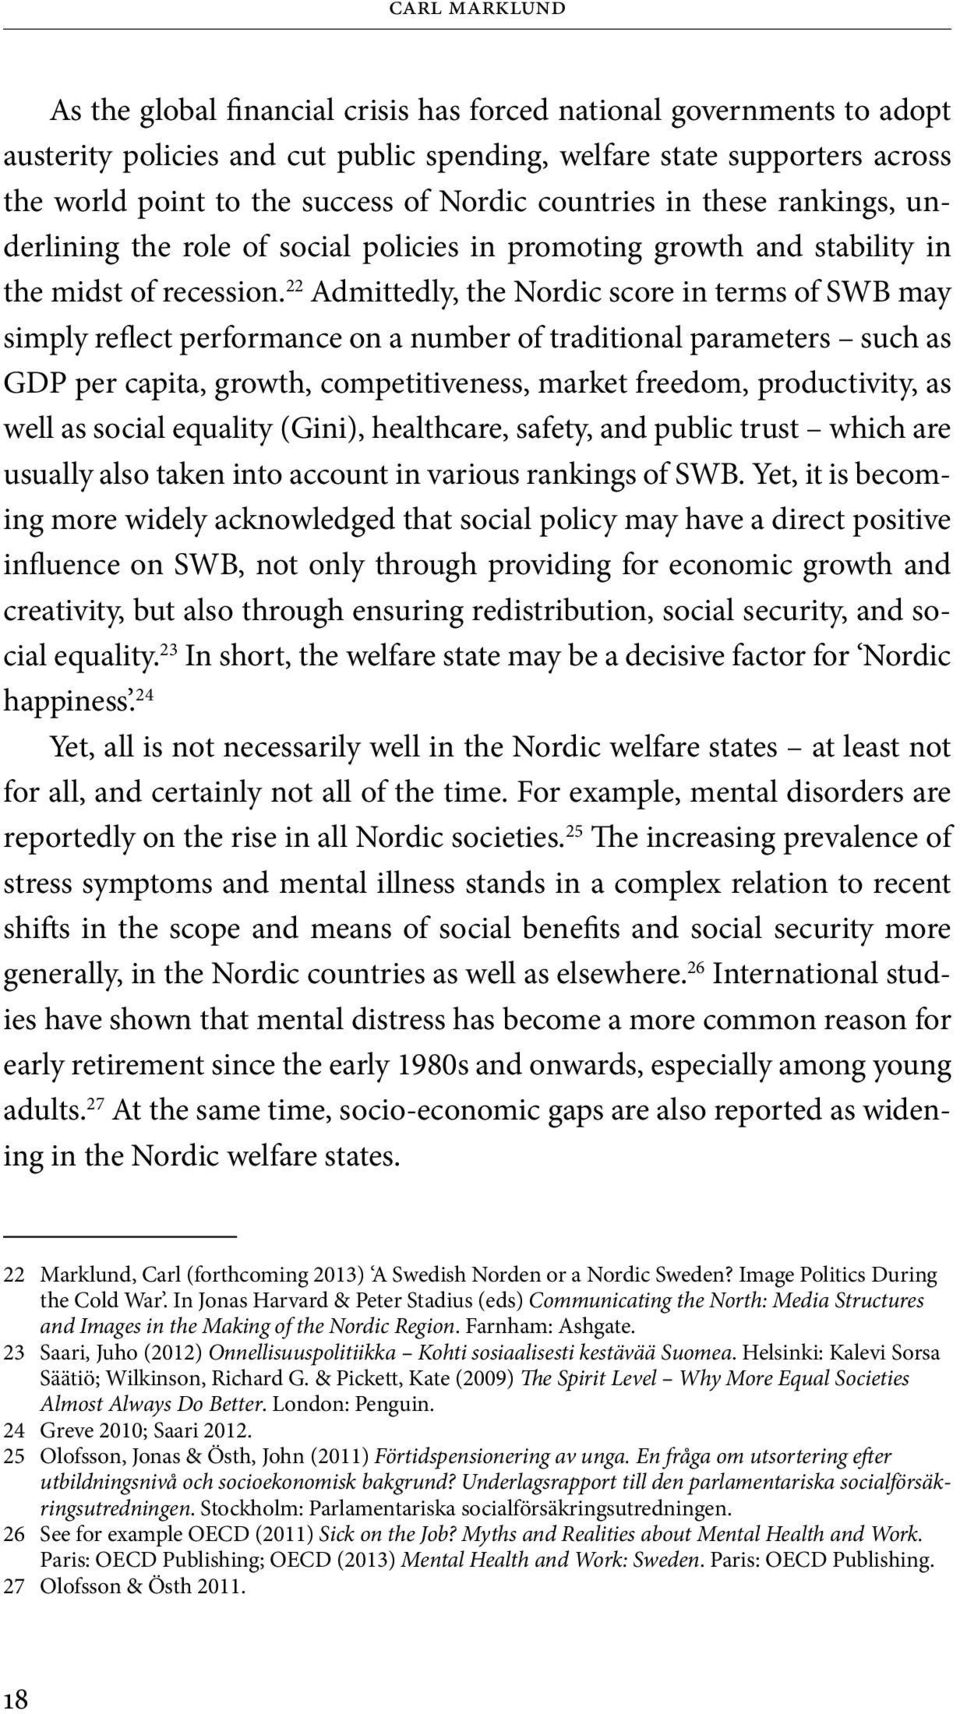 22 Admittedly, the Nordic score in terms of SWB may simply reflect performance on a number of traditional parameters such as GDP per capita, growth, competitiveness, market freedom, productivity, as